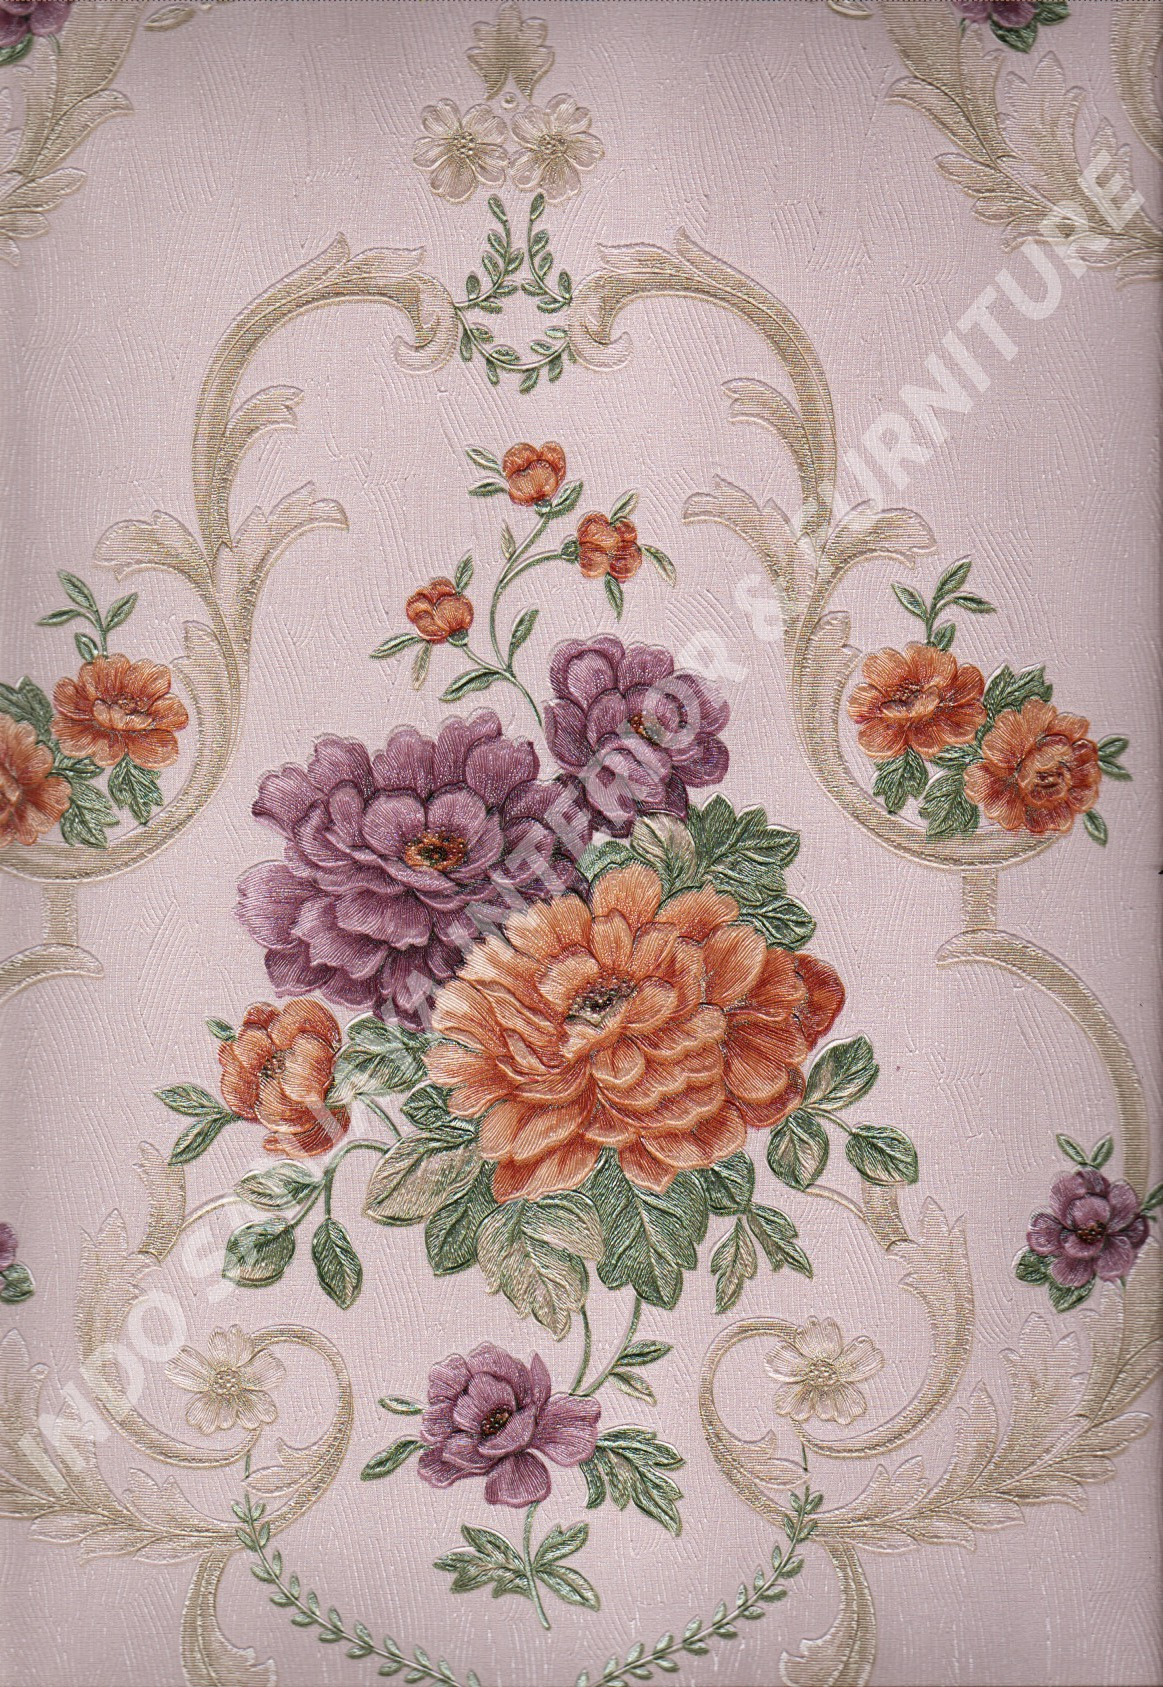 wallpaper   Wallpaper Bunga 8812:8812 corak  warna